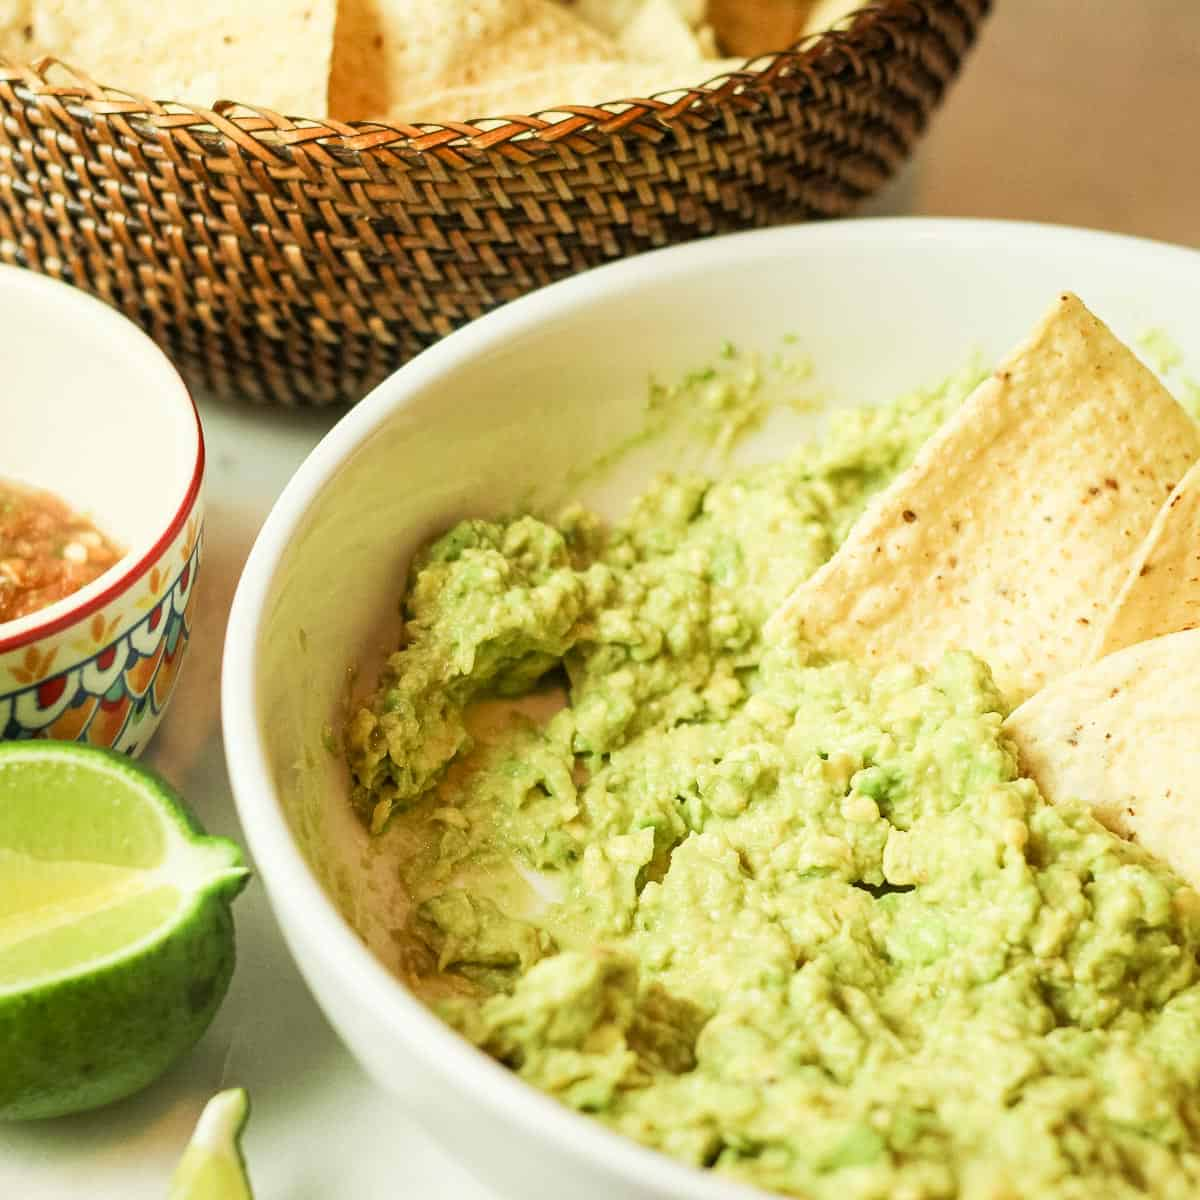 Image of The Best Guacamole shown with a basket of fresh chips on the left and some salsa.